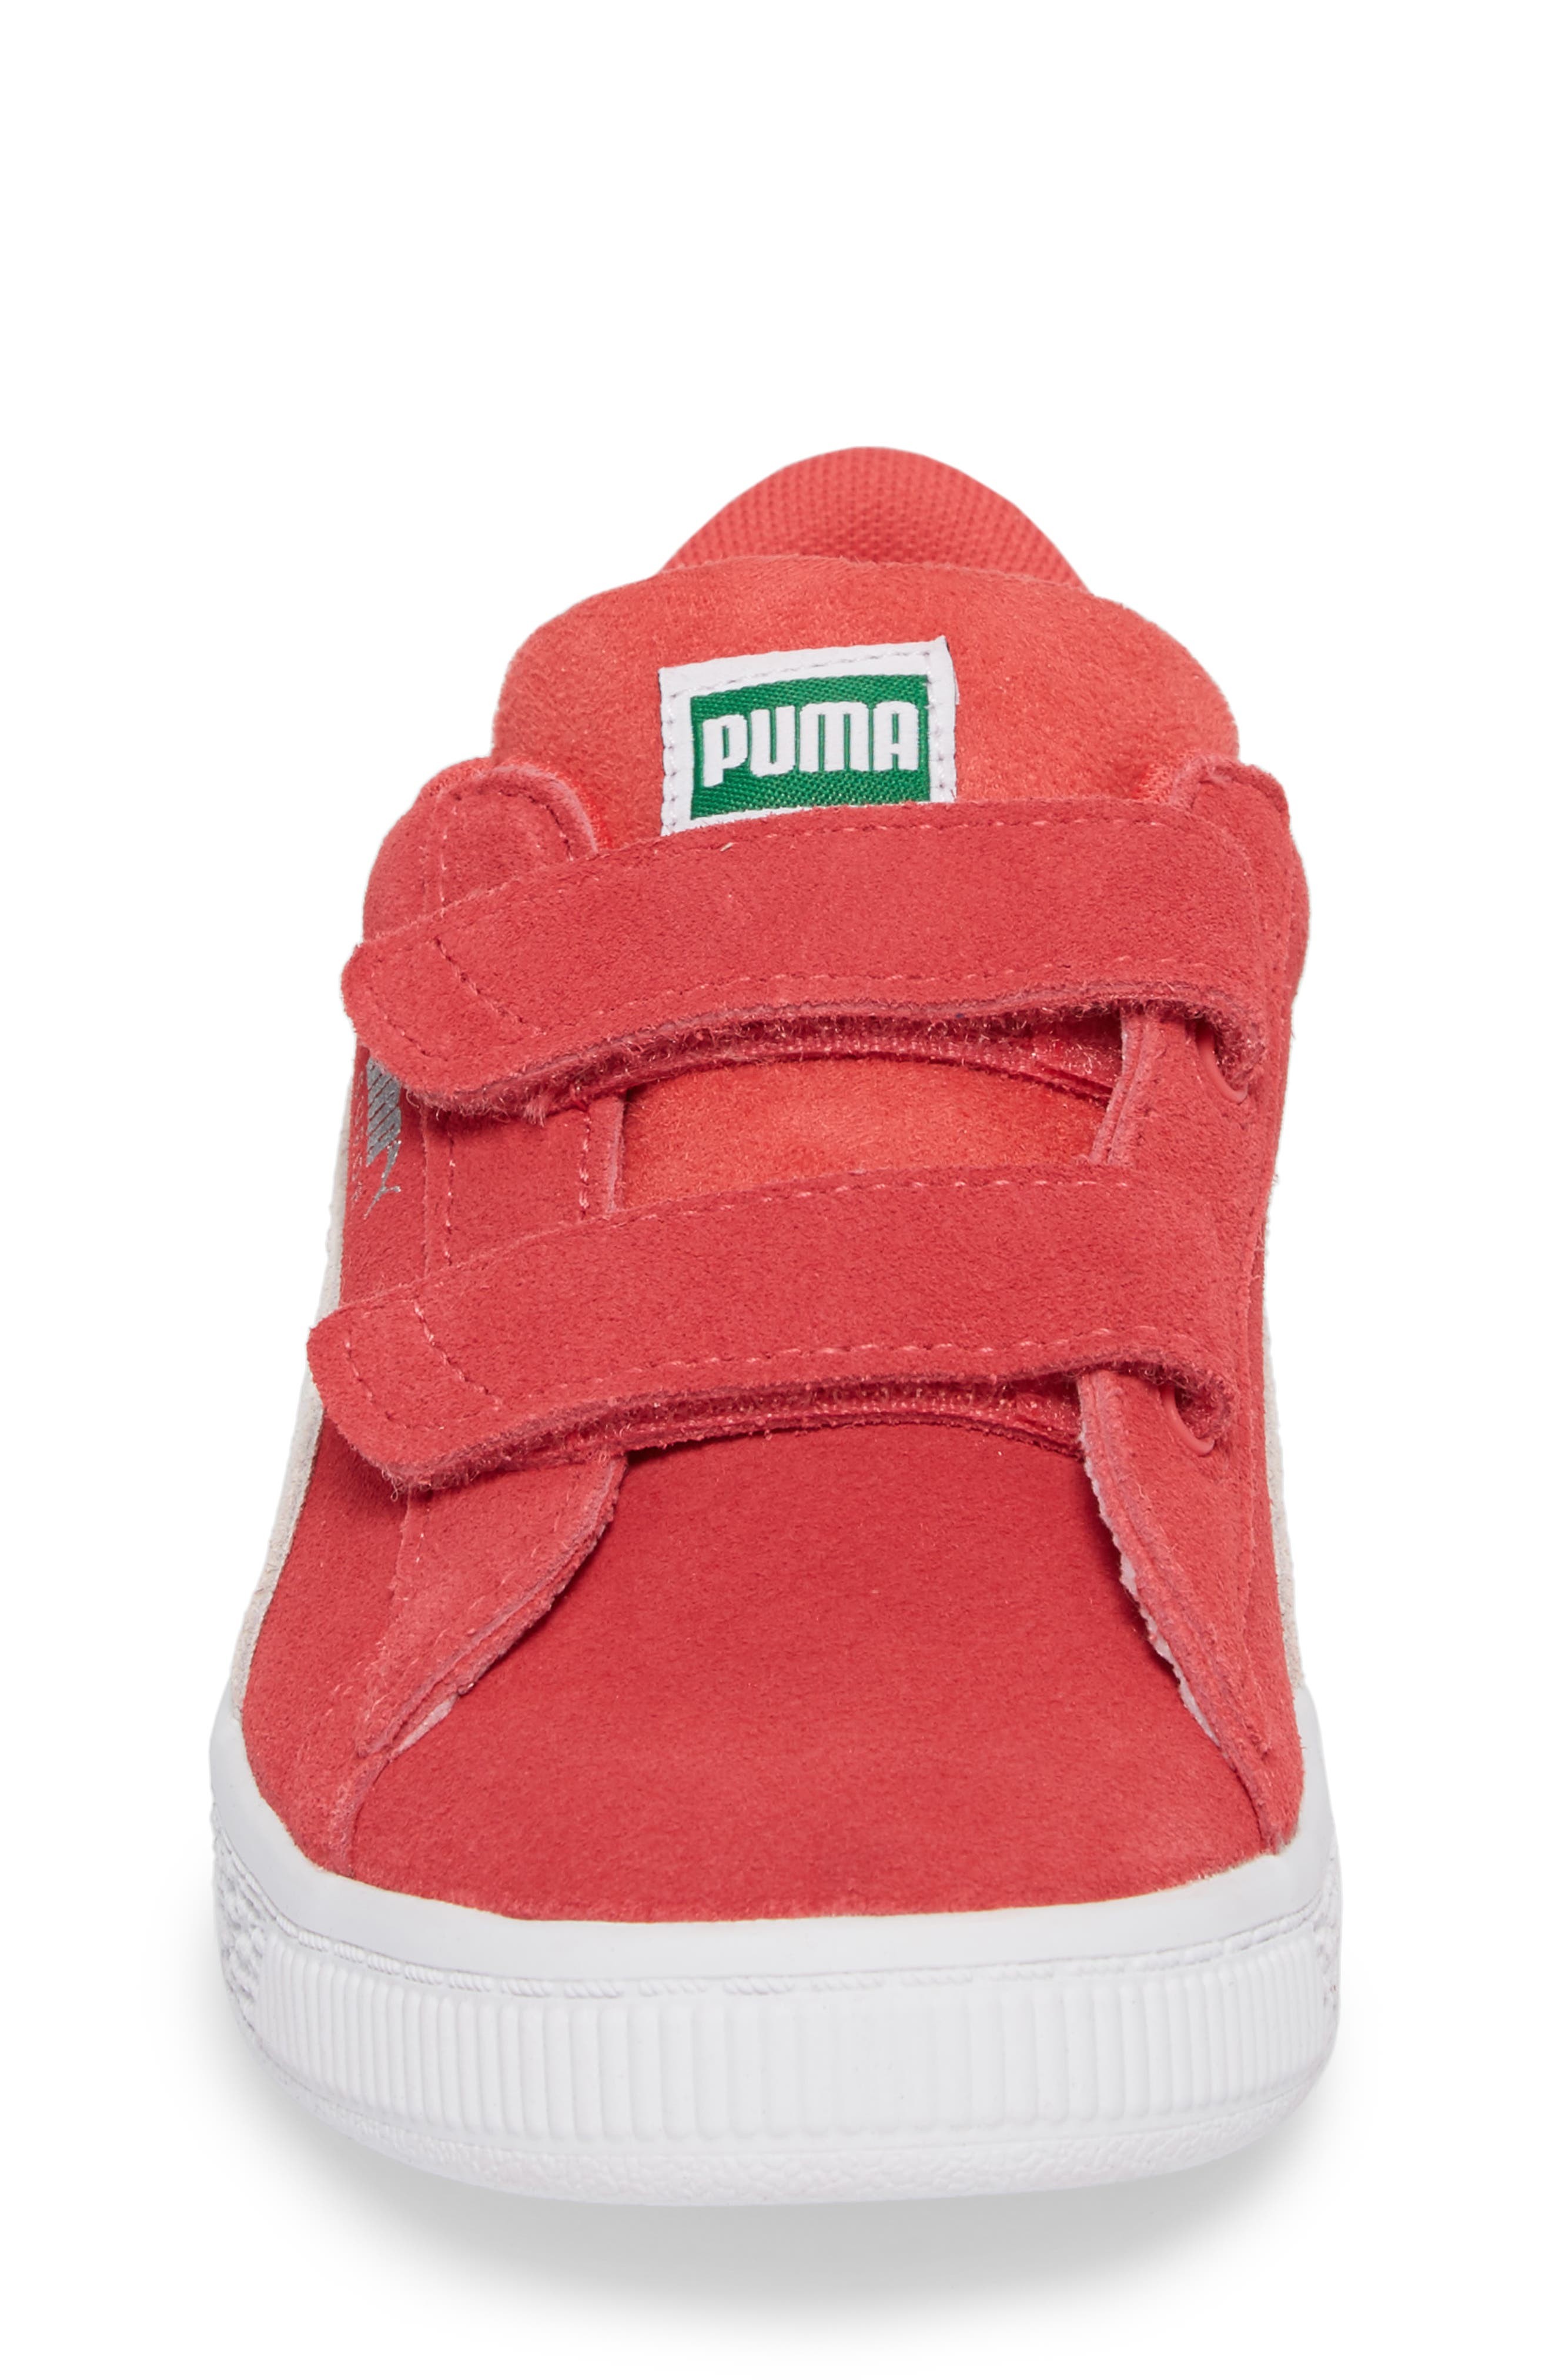 Suede Classic Sneaker,                             Alternate thumbnail 4, color,                             Paradise Pink/ Puma White